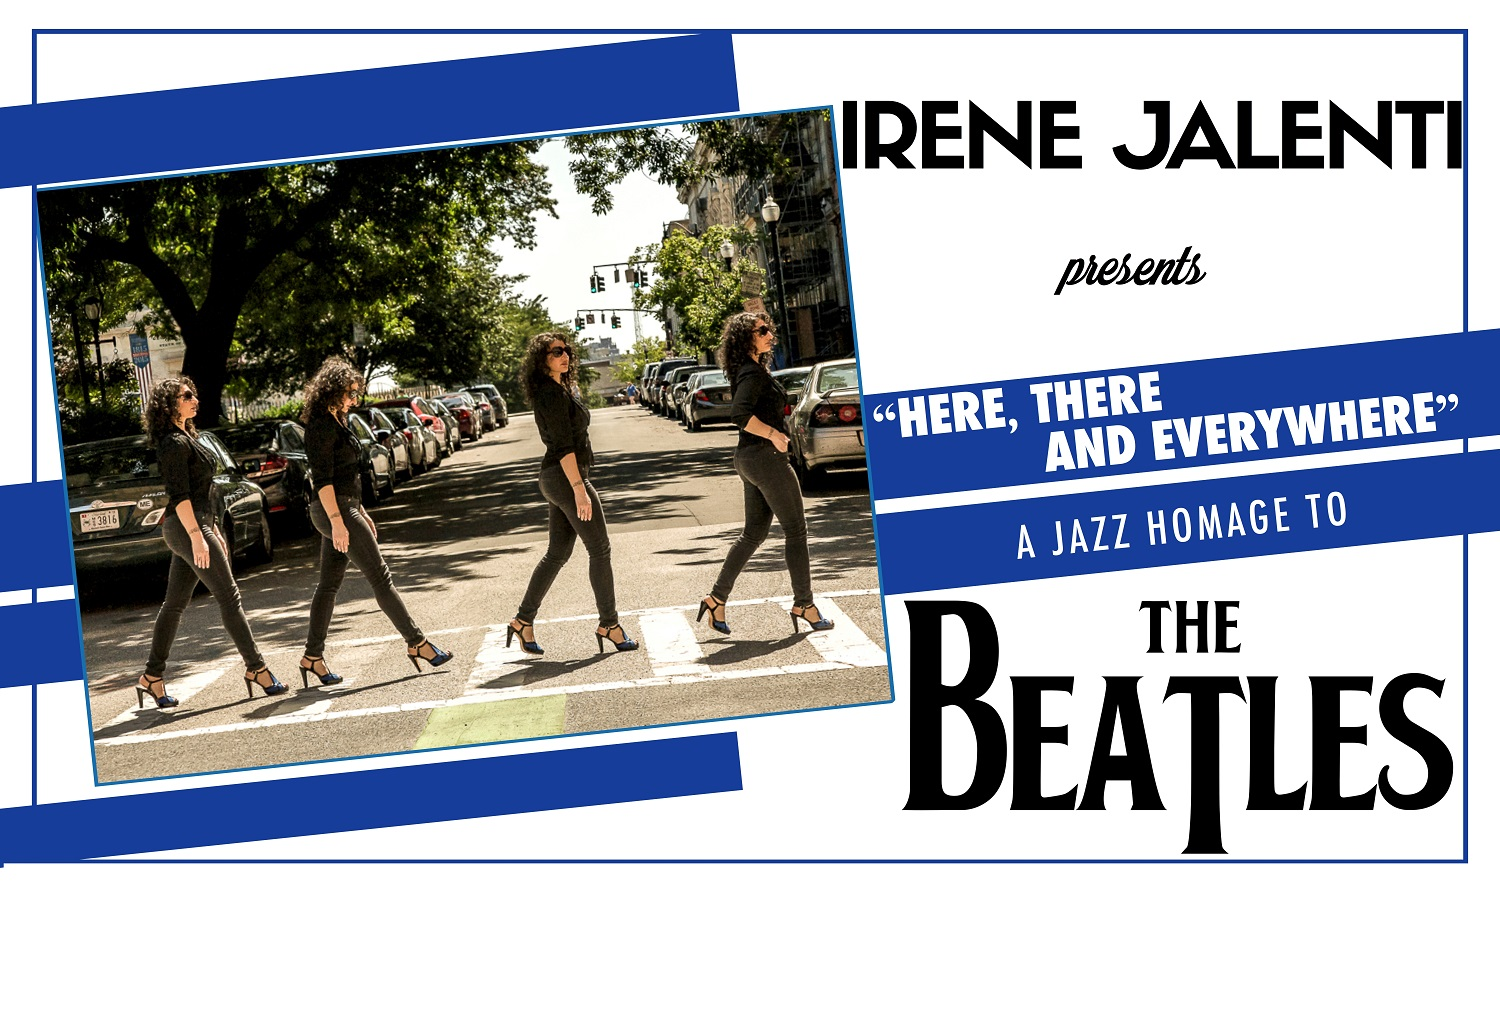 Here There and Everywhere, a Jazz Homage to The Beatles featuring Irene Jalenti